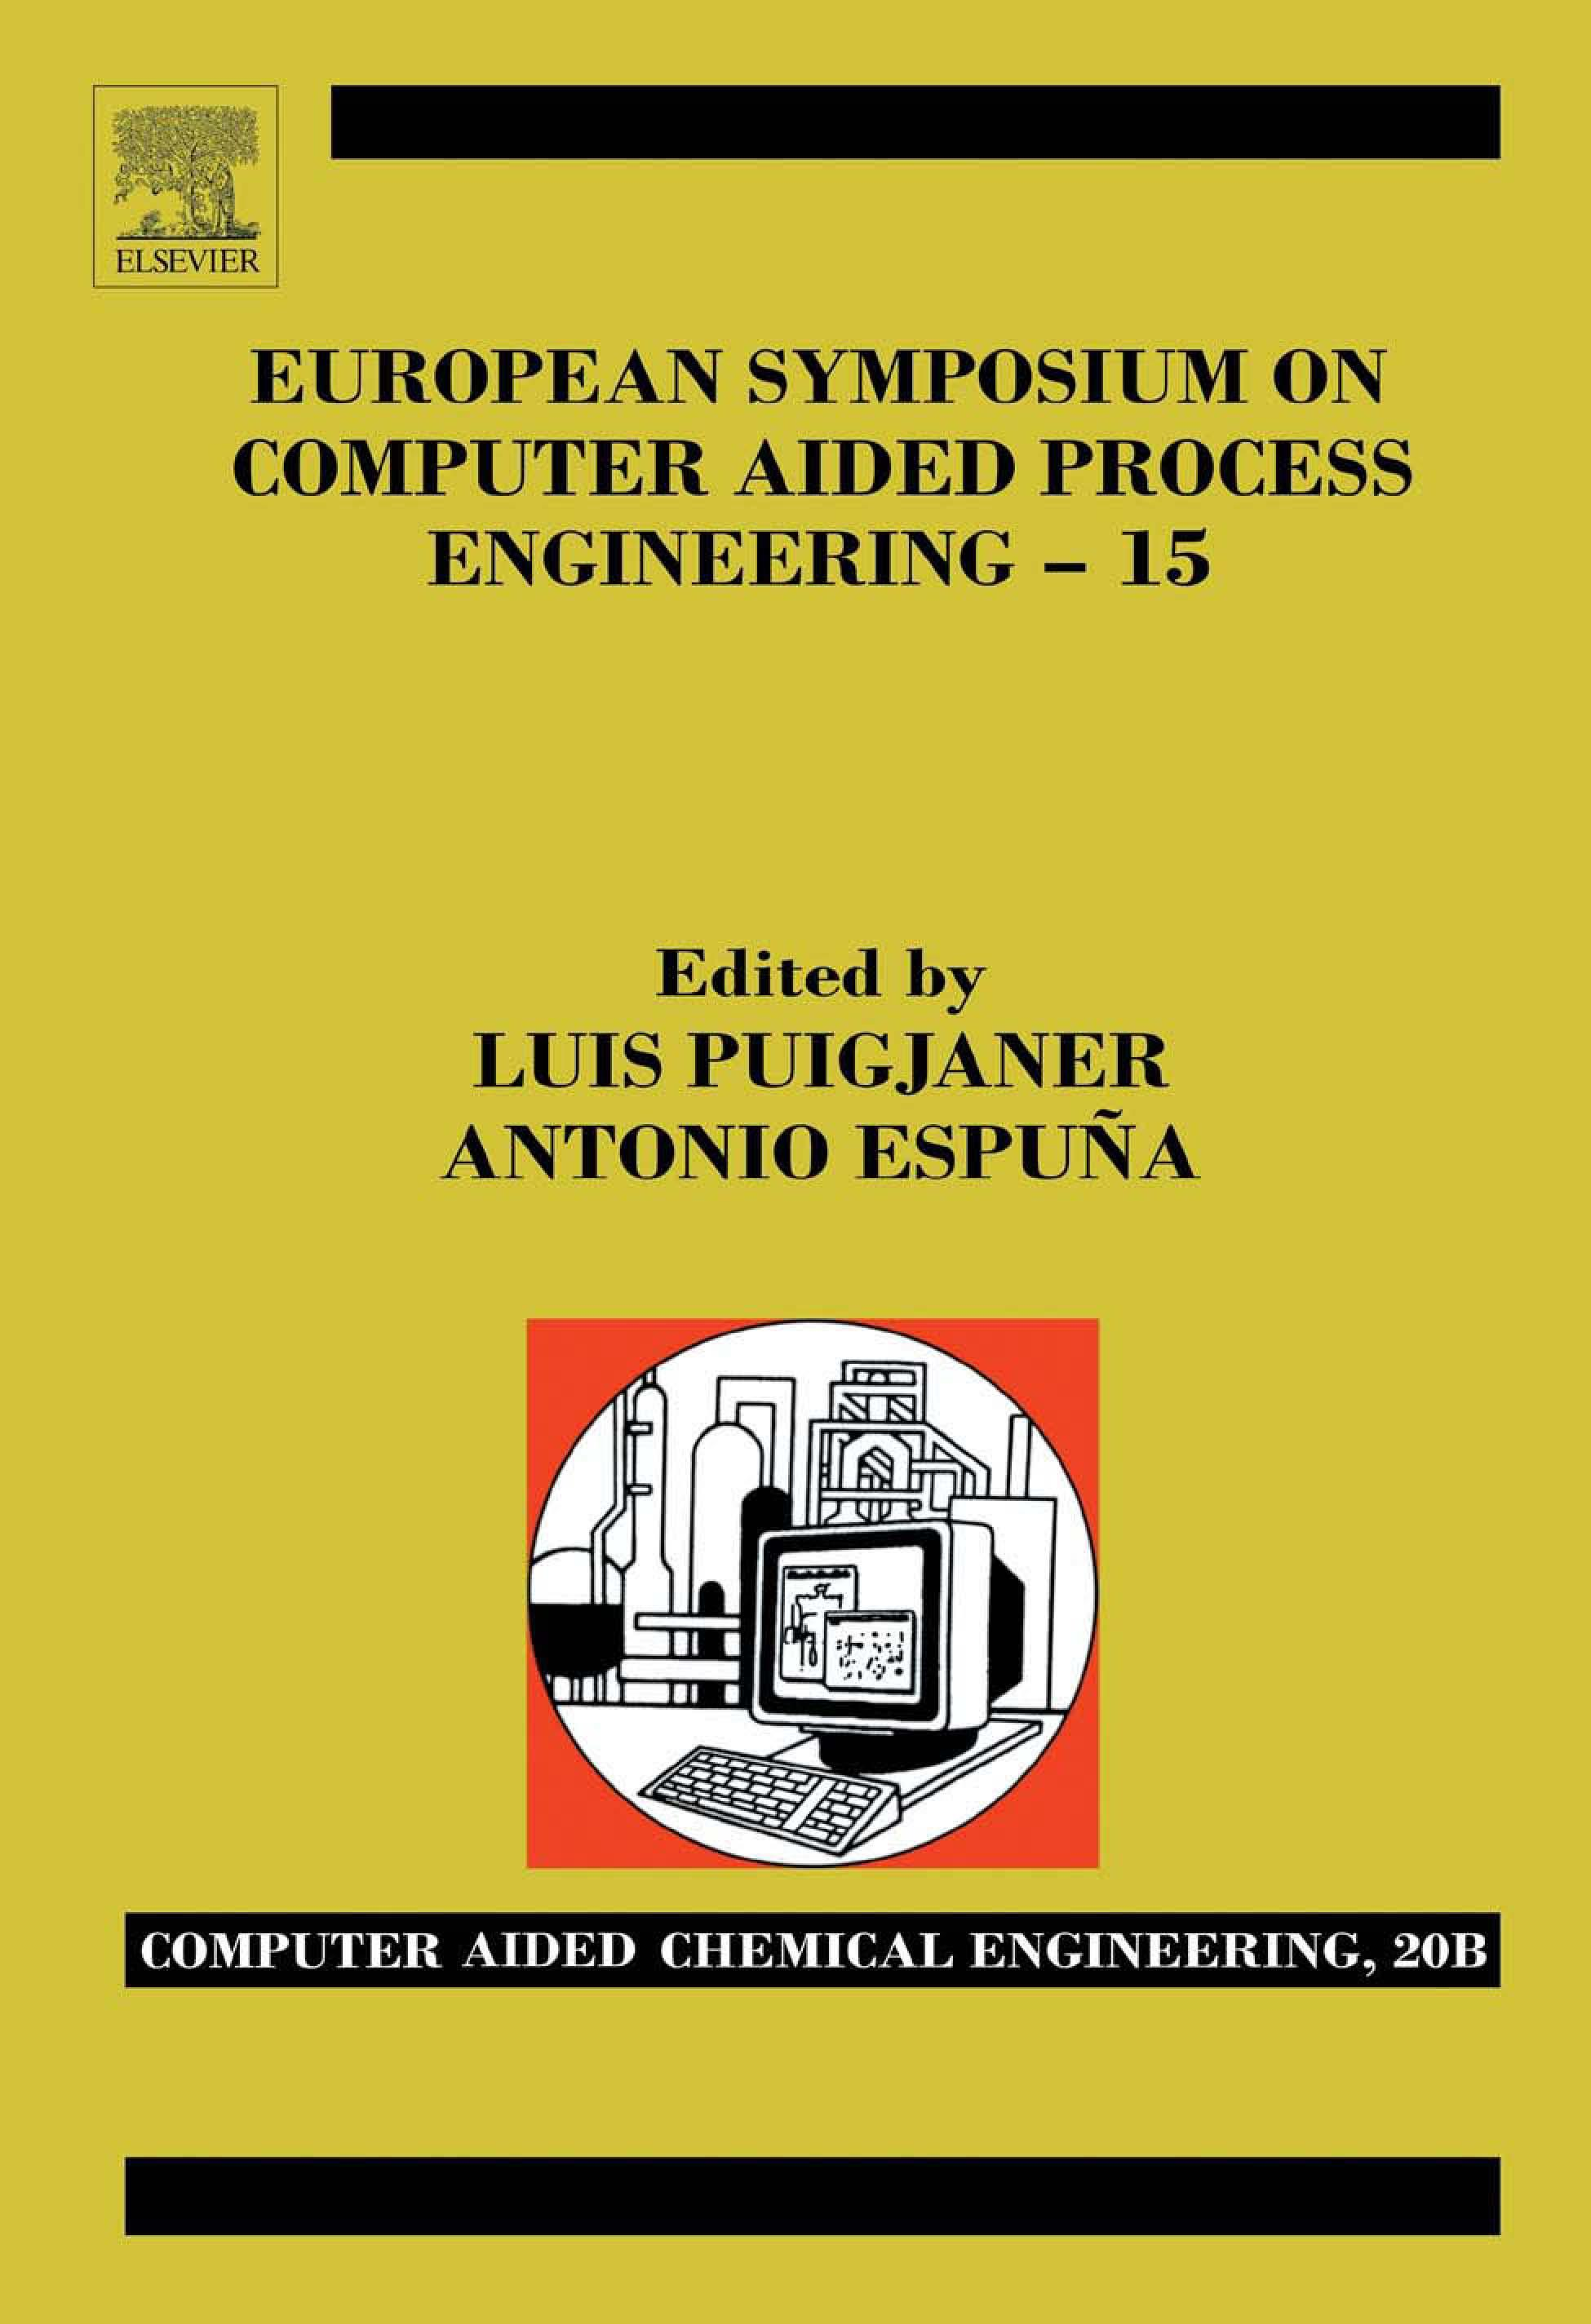 European Symposium on Computer and Process Engineering - 15. Computer Aided Chemical Engineering, Volume 20B.